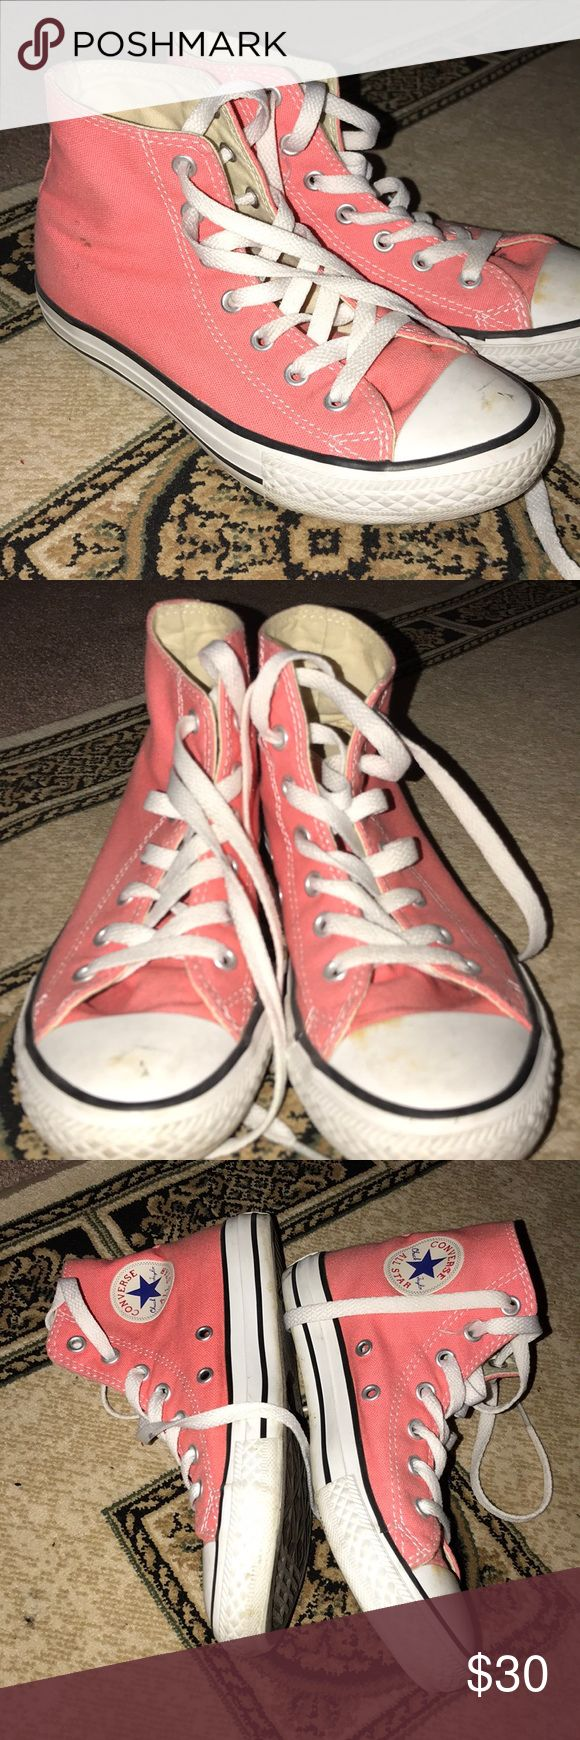 Kids converse Super fun color for spring/summer  Size 2 Some signs of wear but will most likely wash out Soles in almost new condition  See pictures for detailed signs of wear Converse Shoes Sneakers